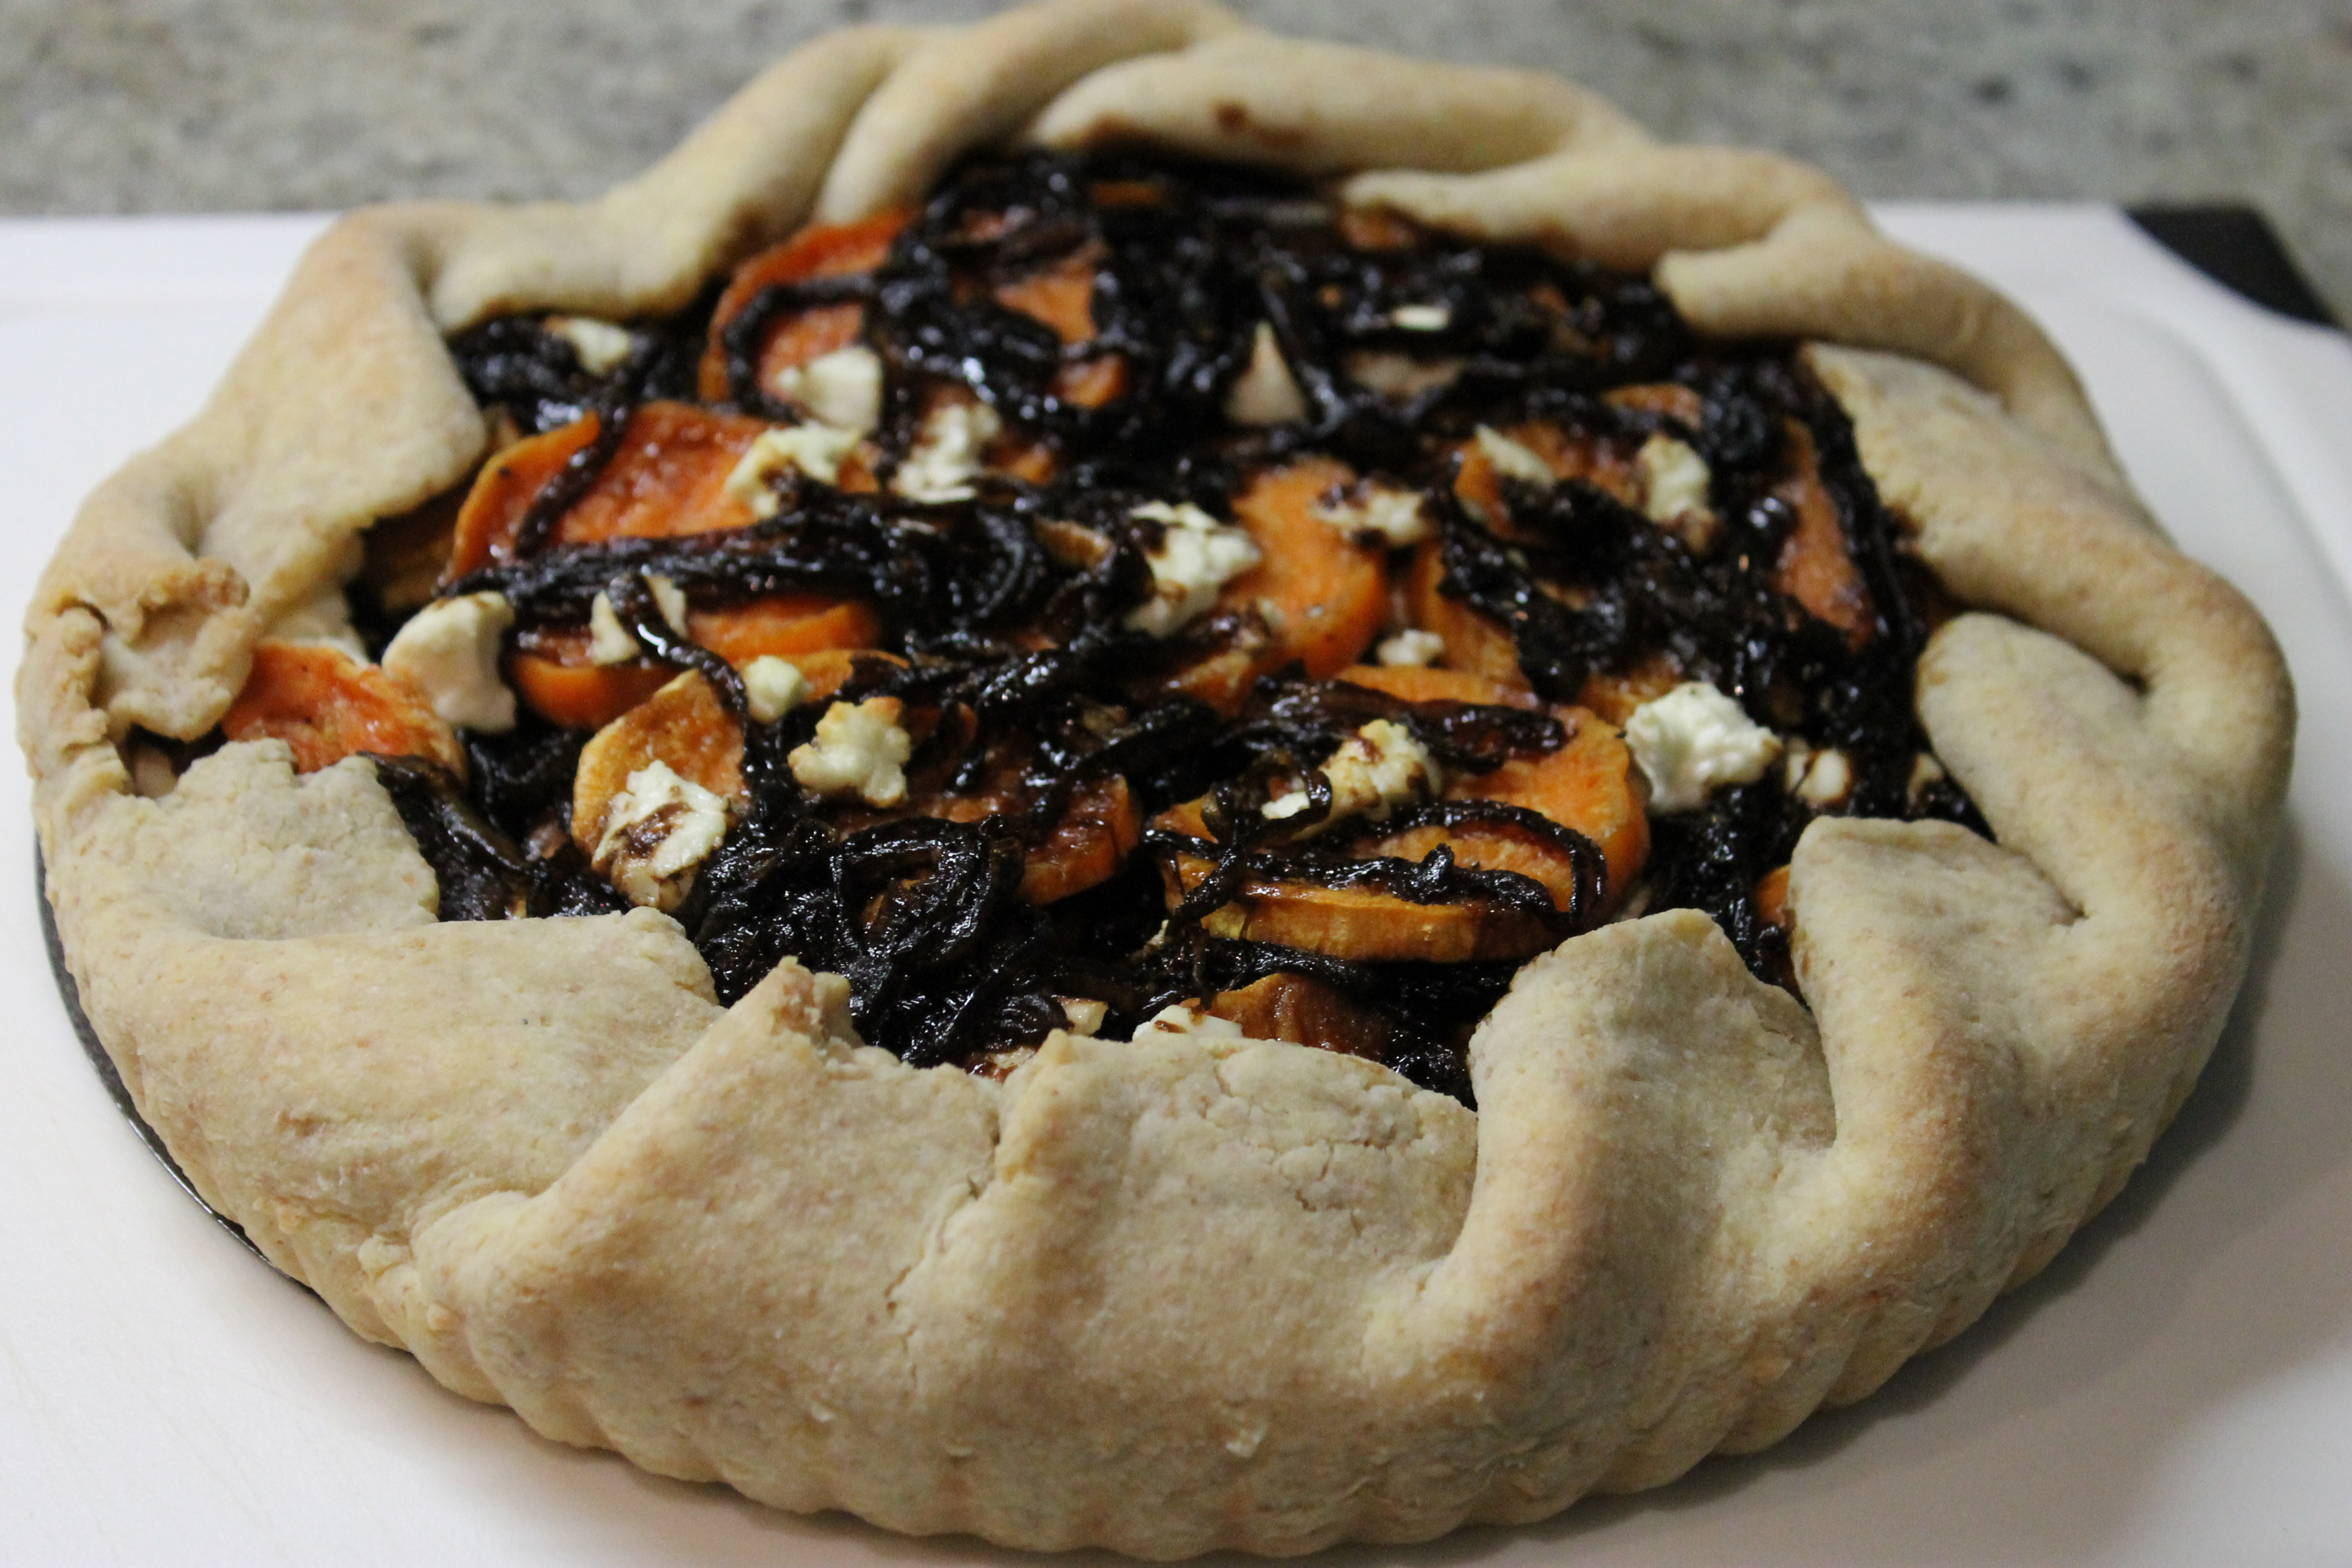 Sweet Potato, Balsamic Caramelized Onion & Goat Cheese Galette